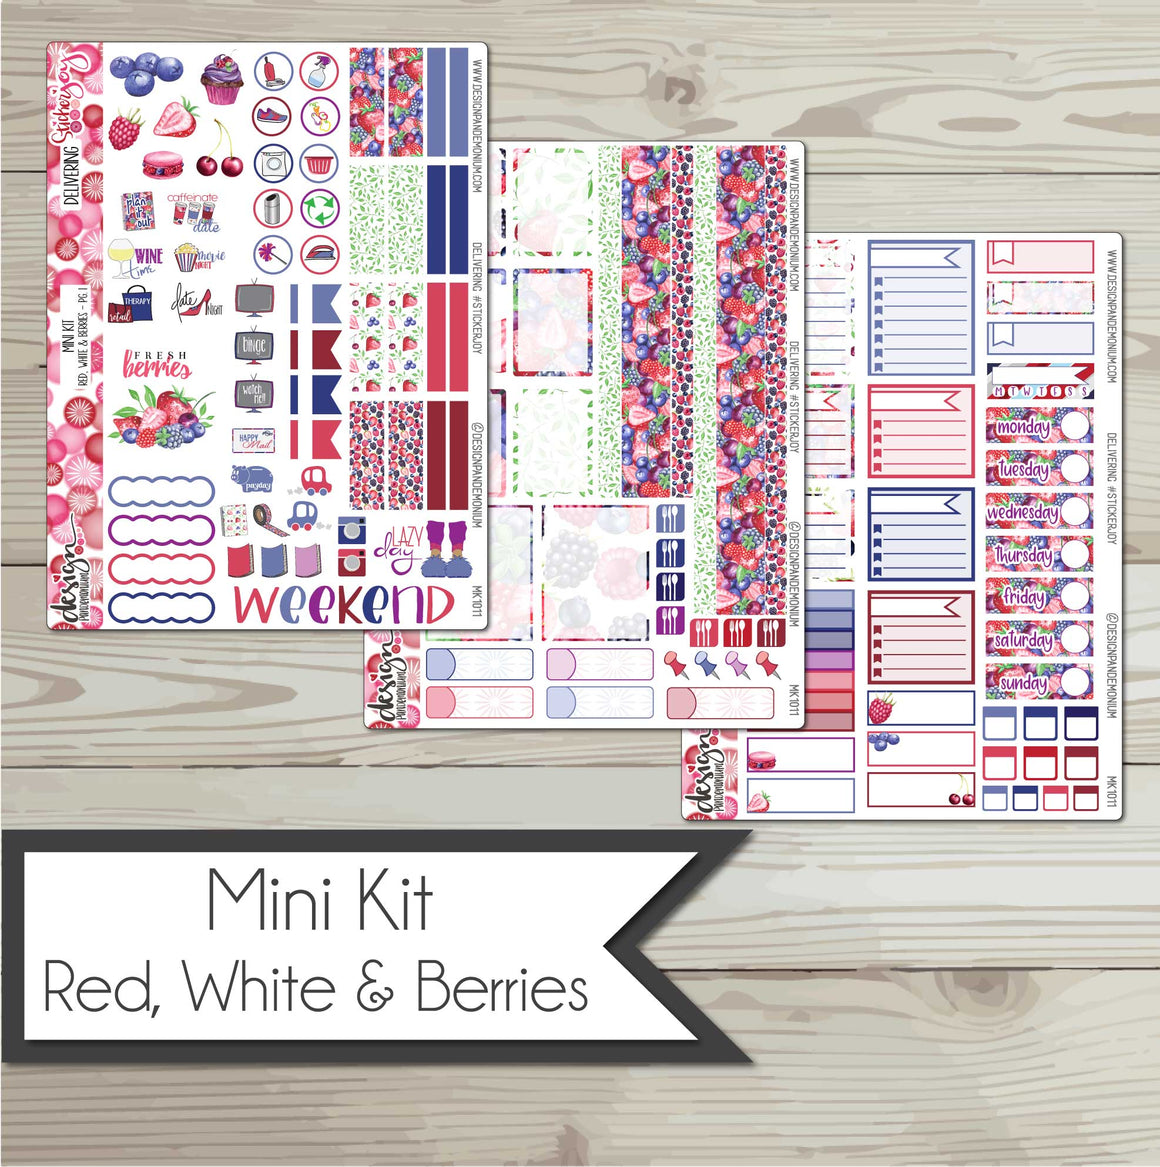 Mini Kit - Red, White & Berries